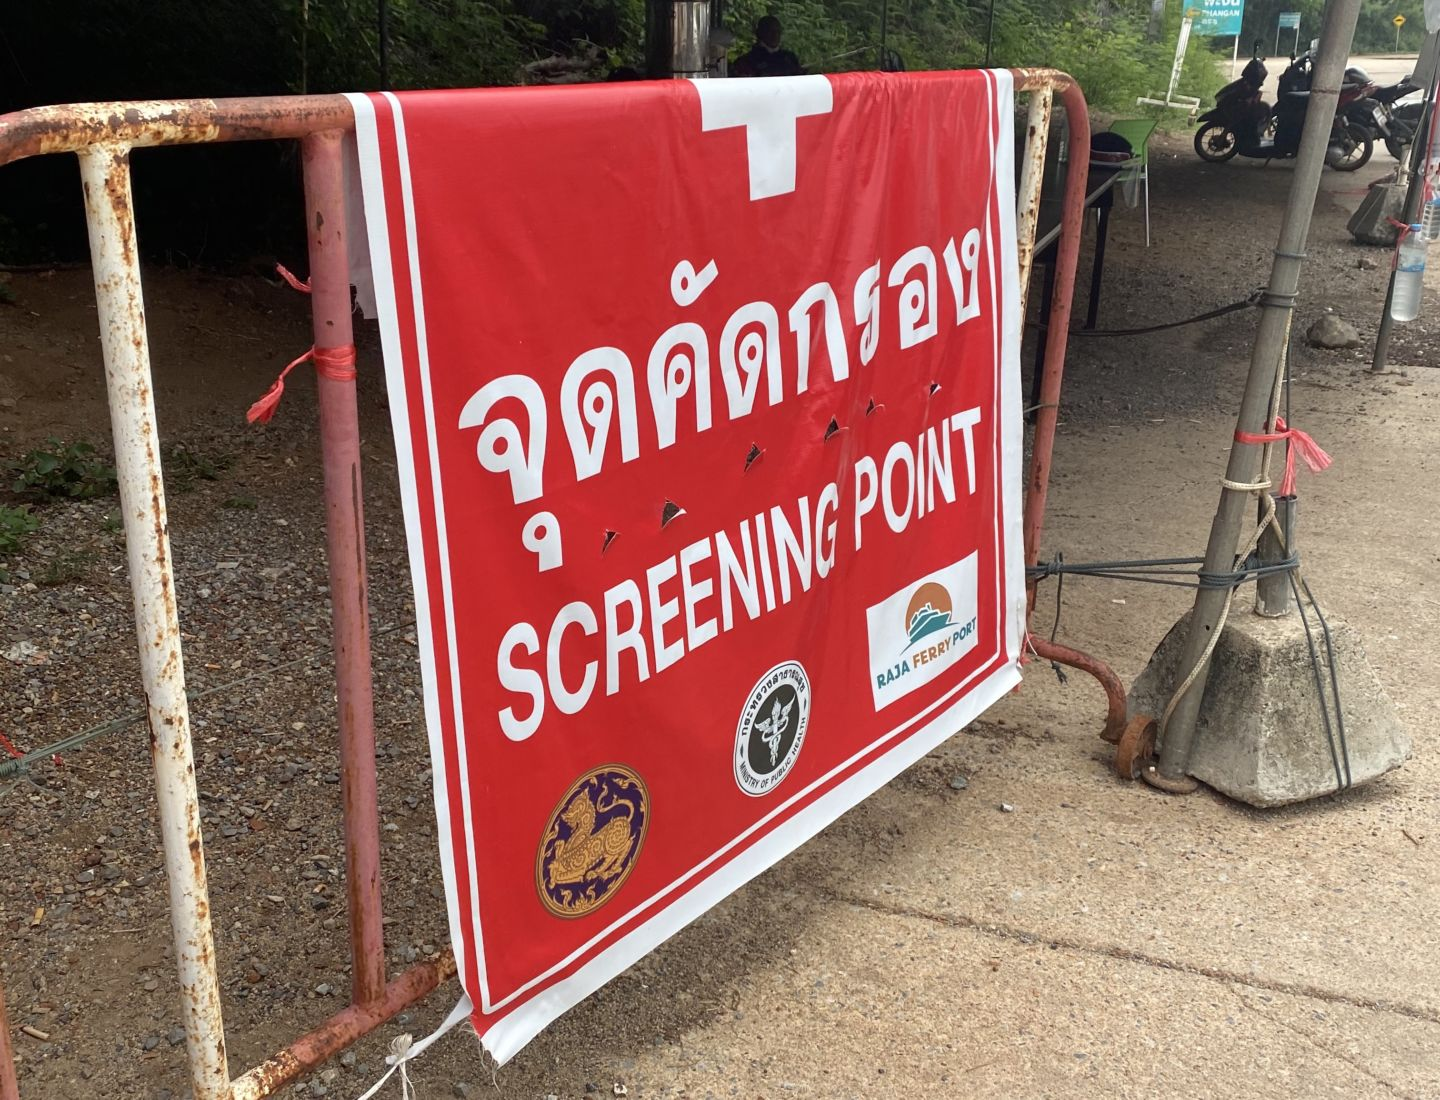 Gang raids virus screening checkpoint and empties community pantry   The Thaiger